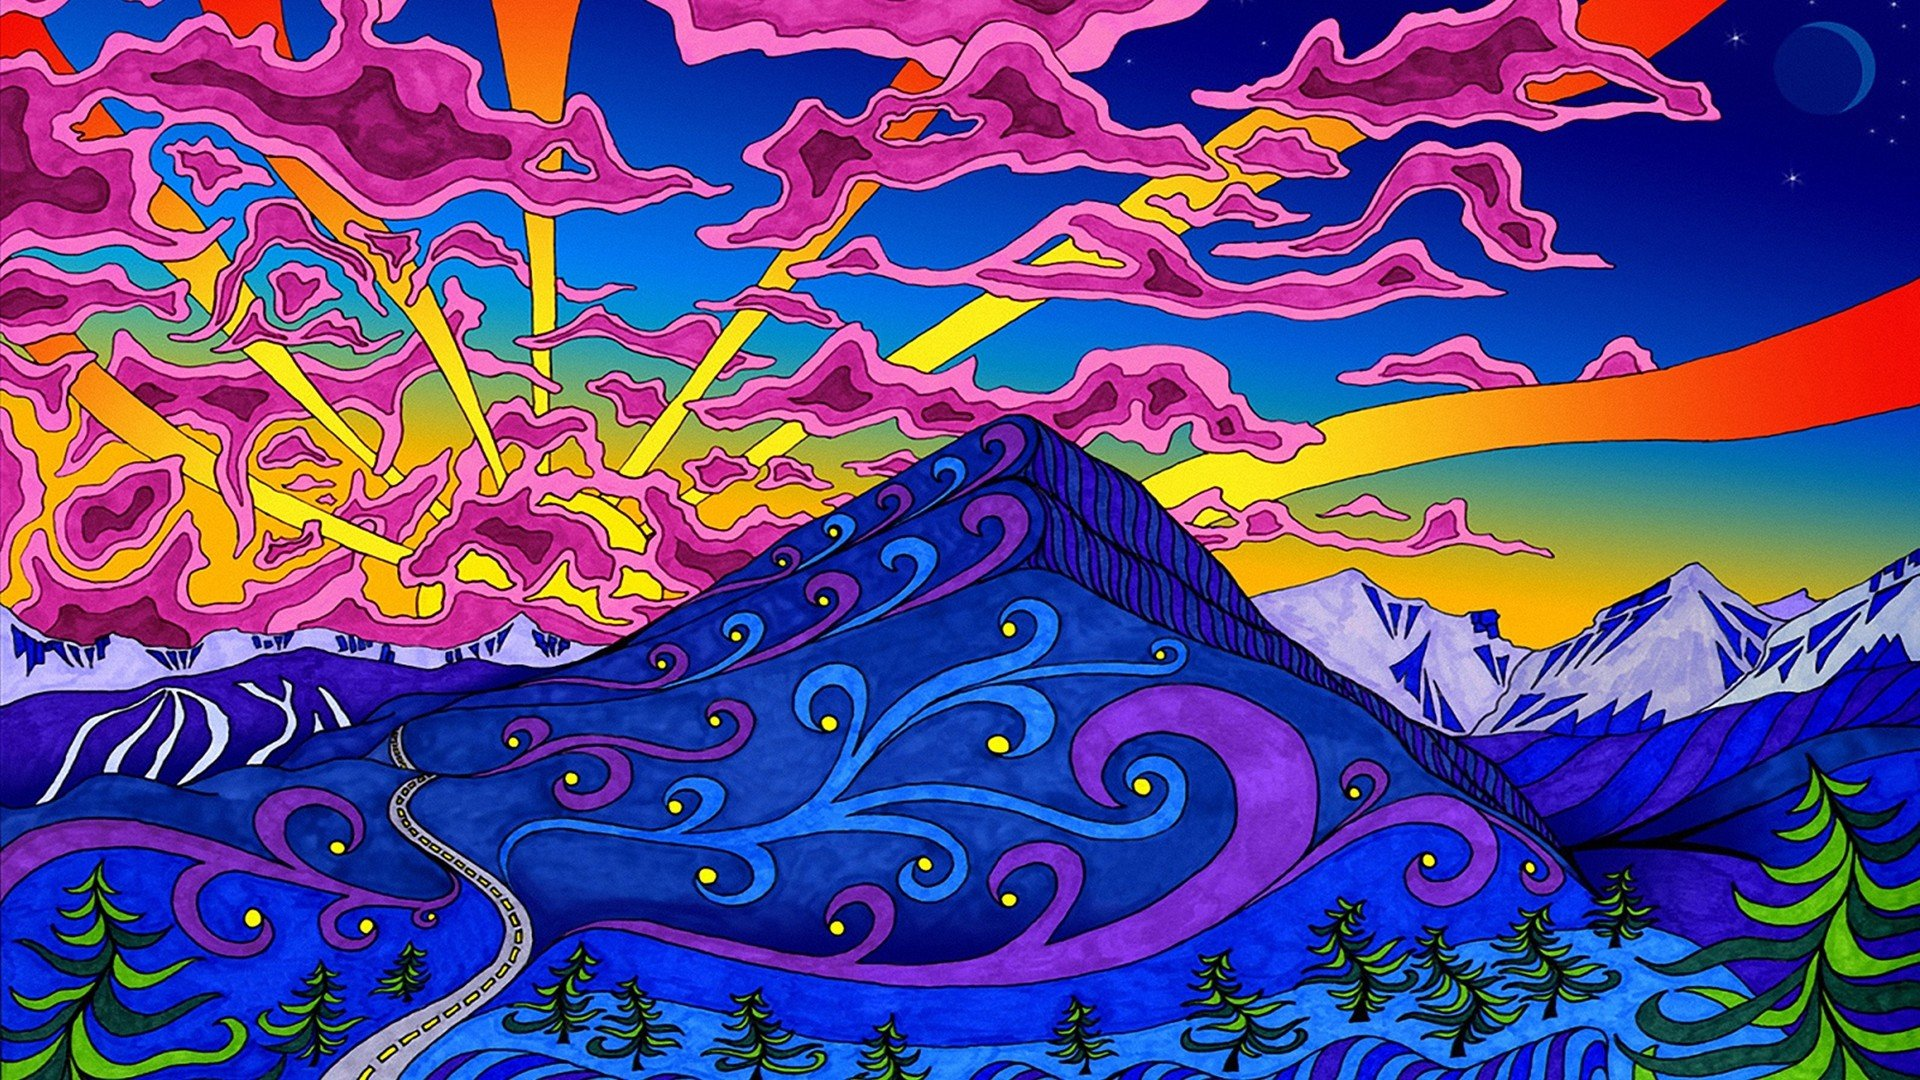 psychedelic hd 1080 wallpapers sexy - photo #2